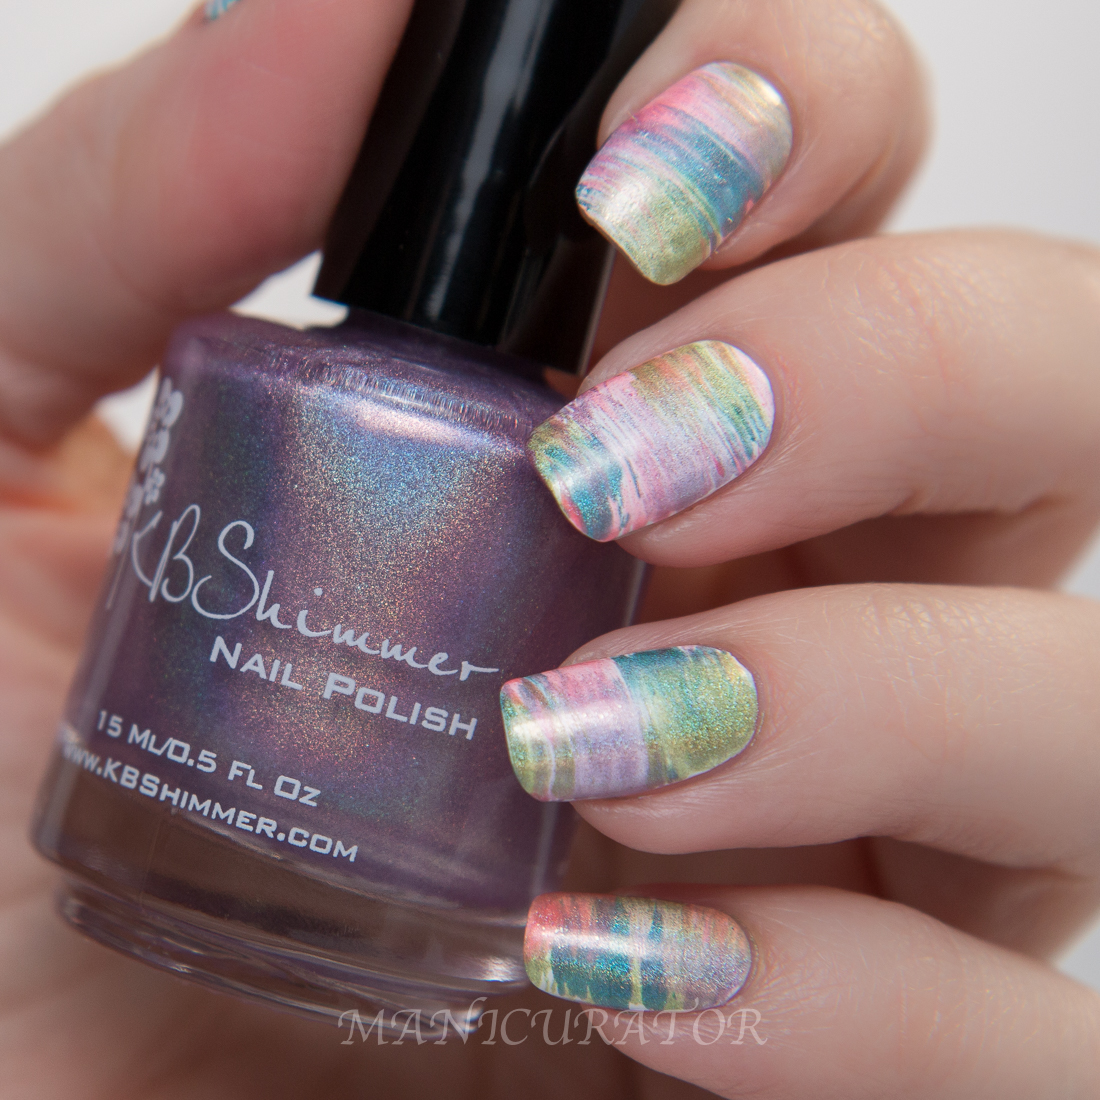 KBShimmer-Thistle-Be-The-Day-fan-brush-flower-nail-art